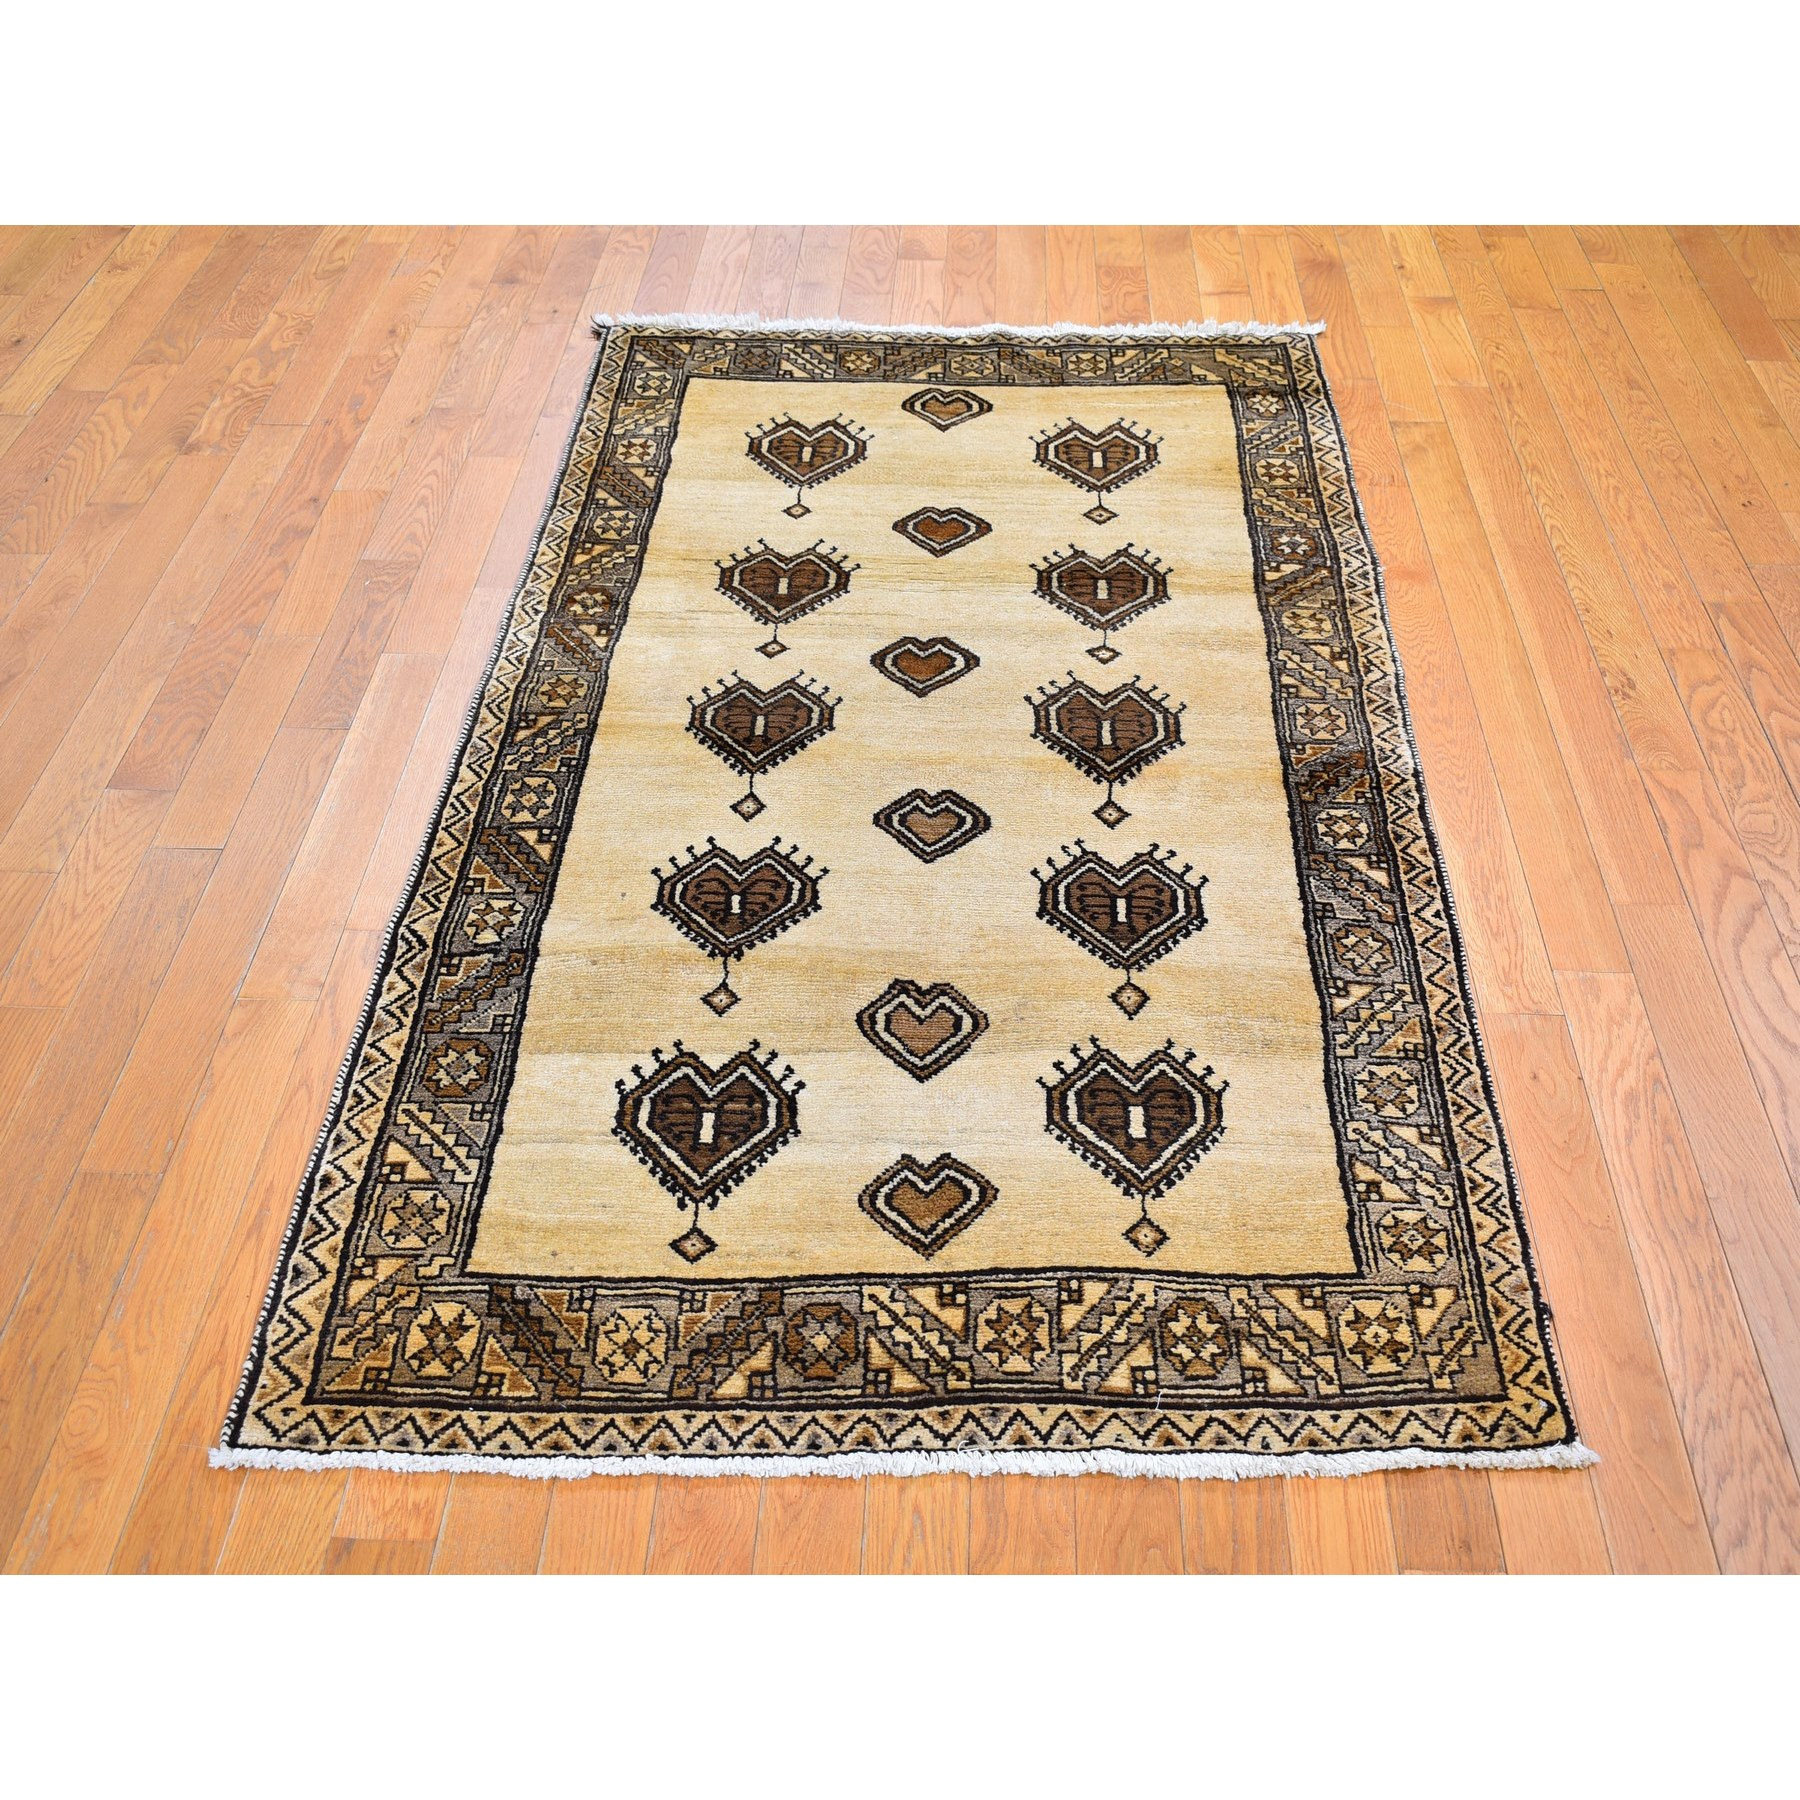 """3'8""""x7' Vintage Persian Gabbeh, Abrash Natural Wool Color Shades with Heart Figurines Hand Knotted Oriental Rug"""